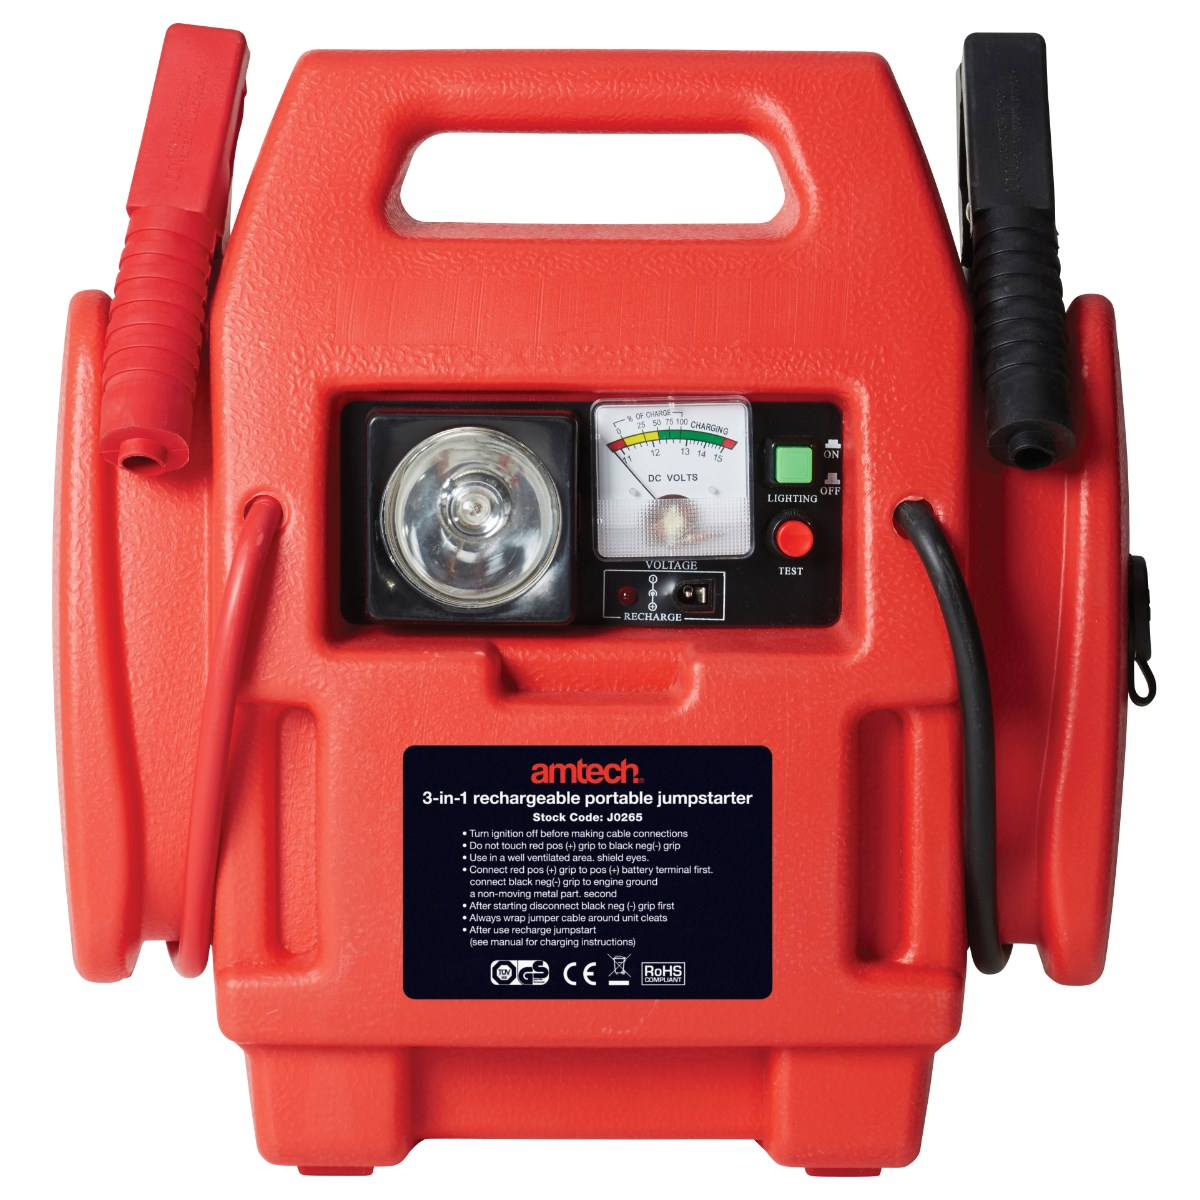 Image of 3-in-1 rechargeable portable jumpstarter